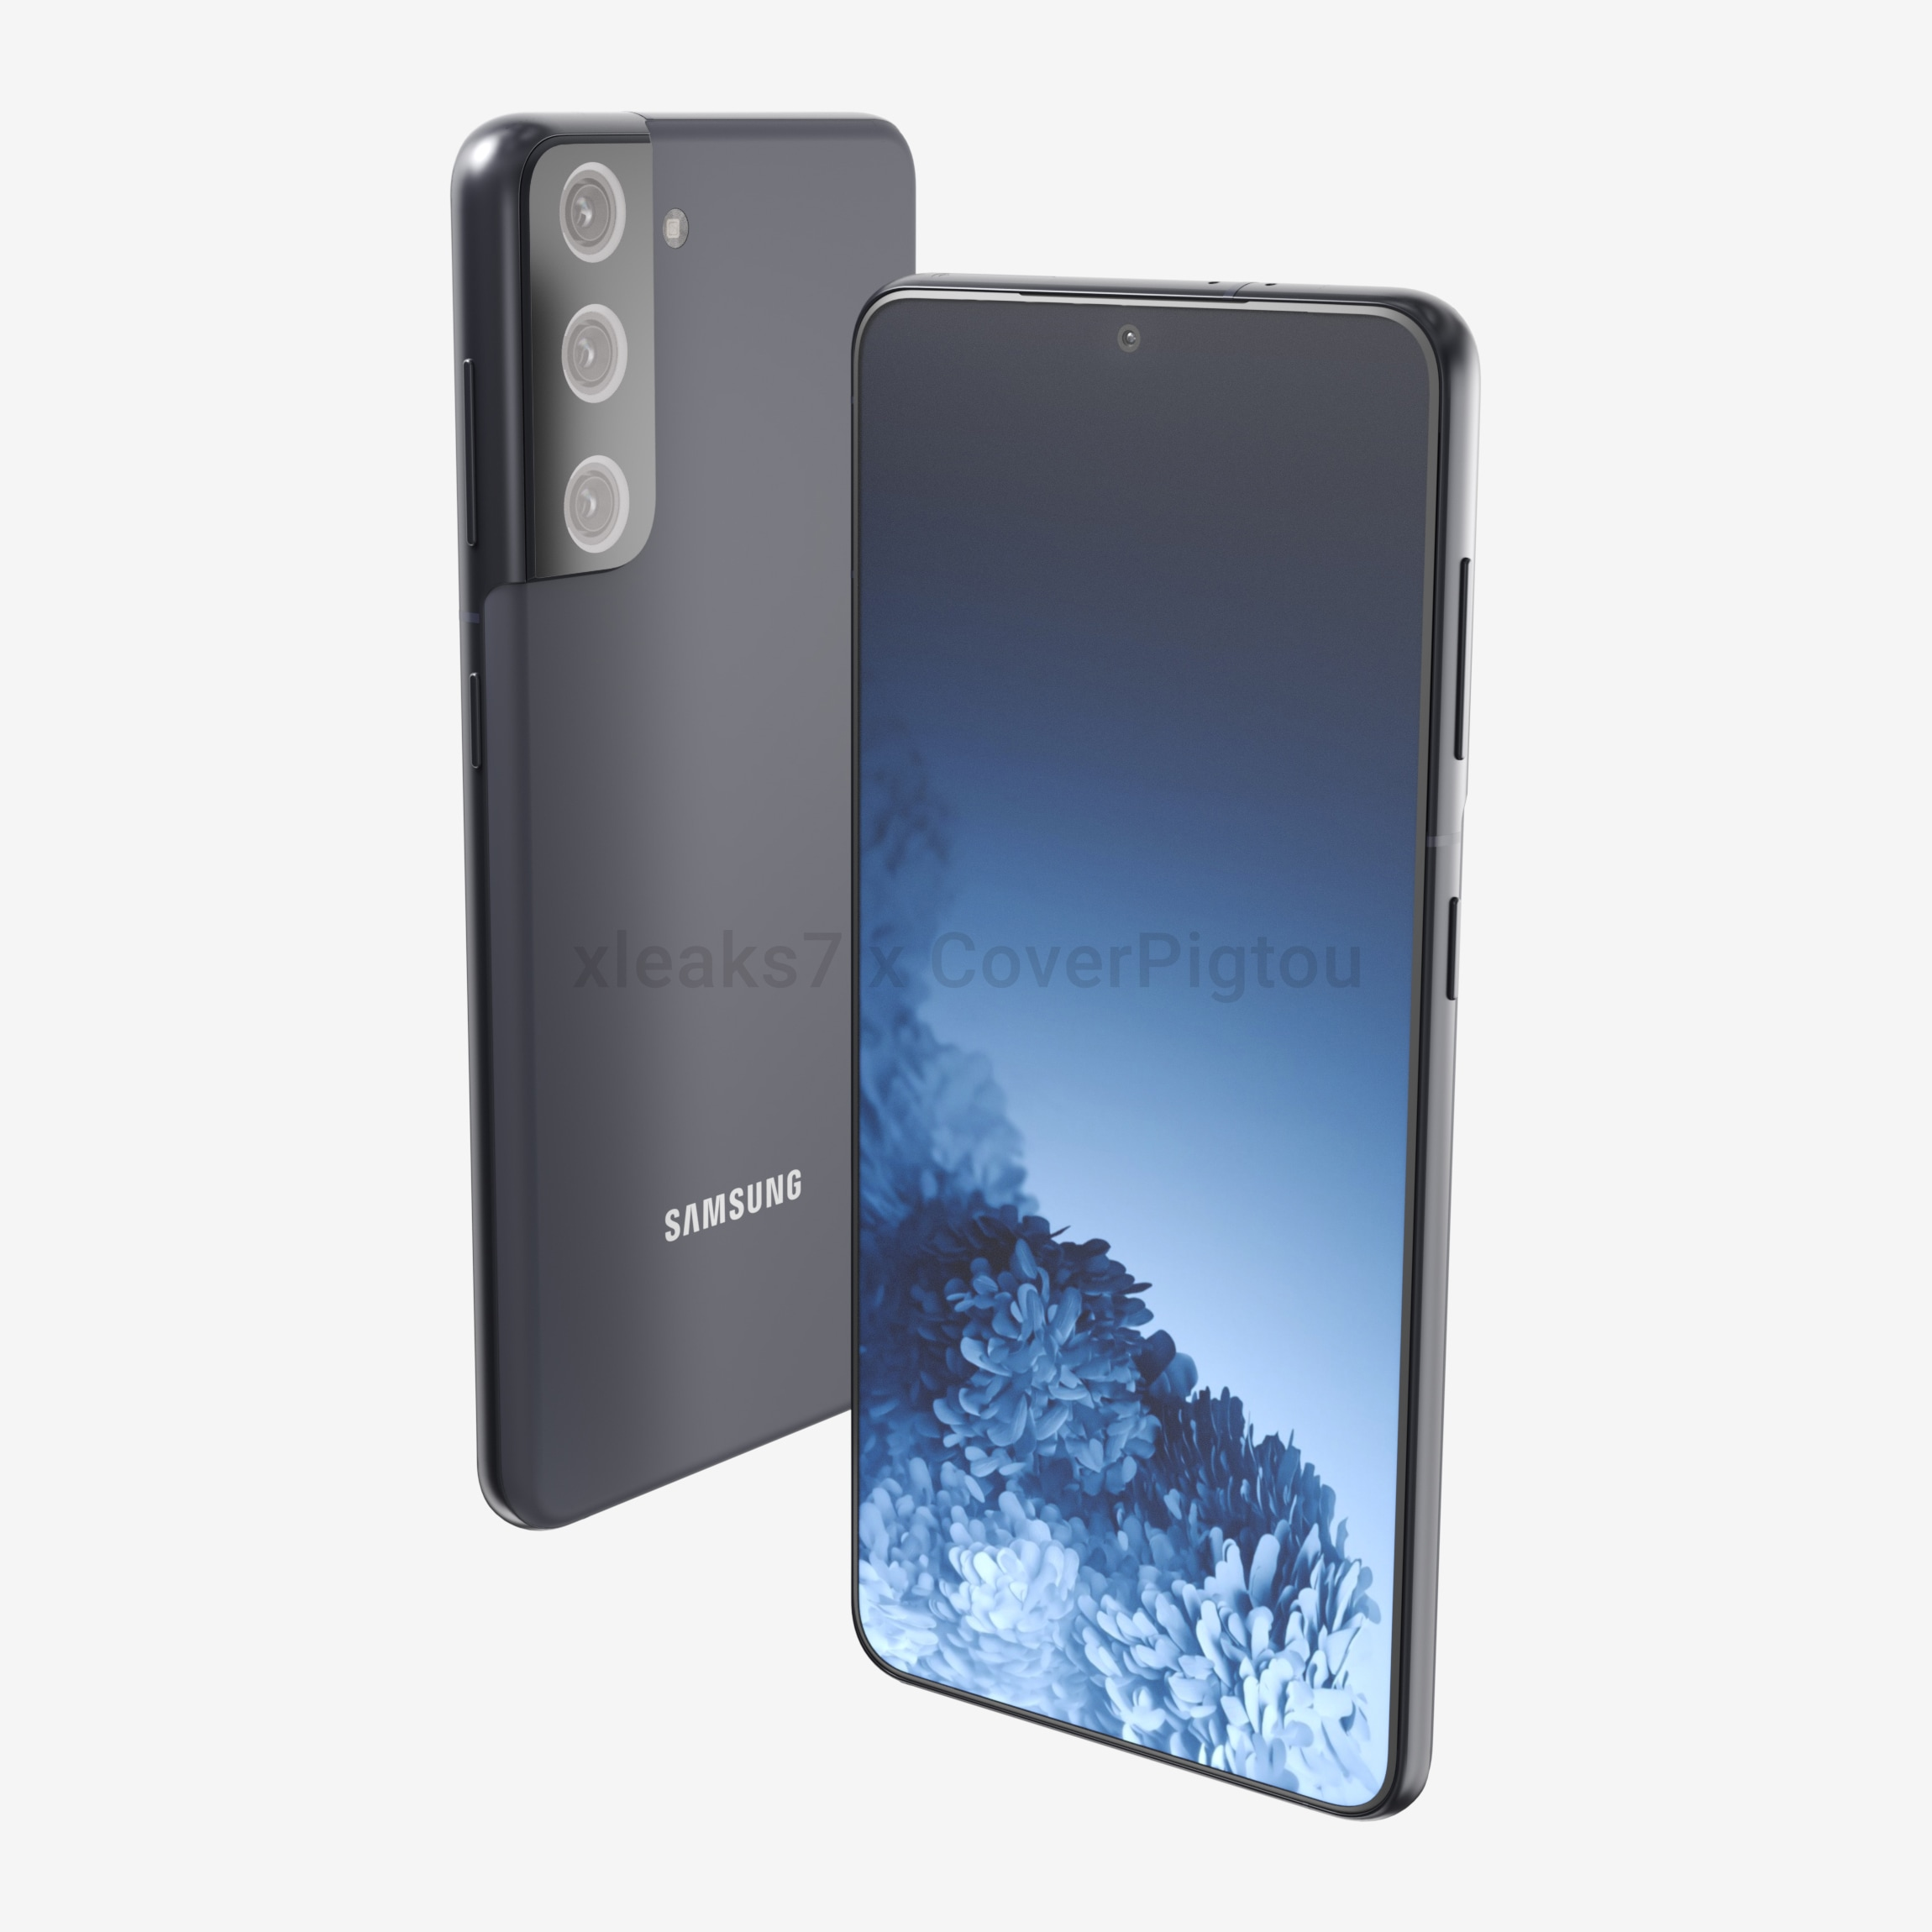 samsung galaxy s21 leaked render (4)